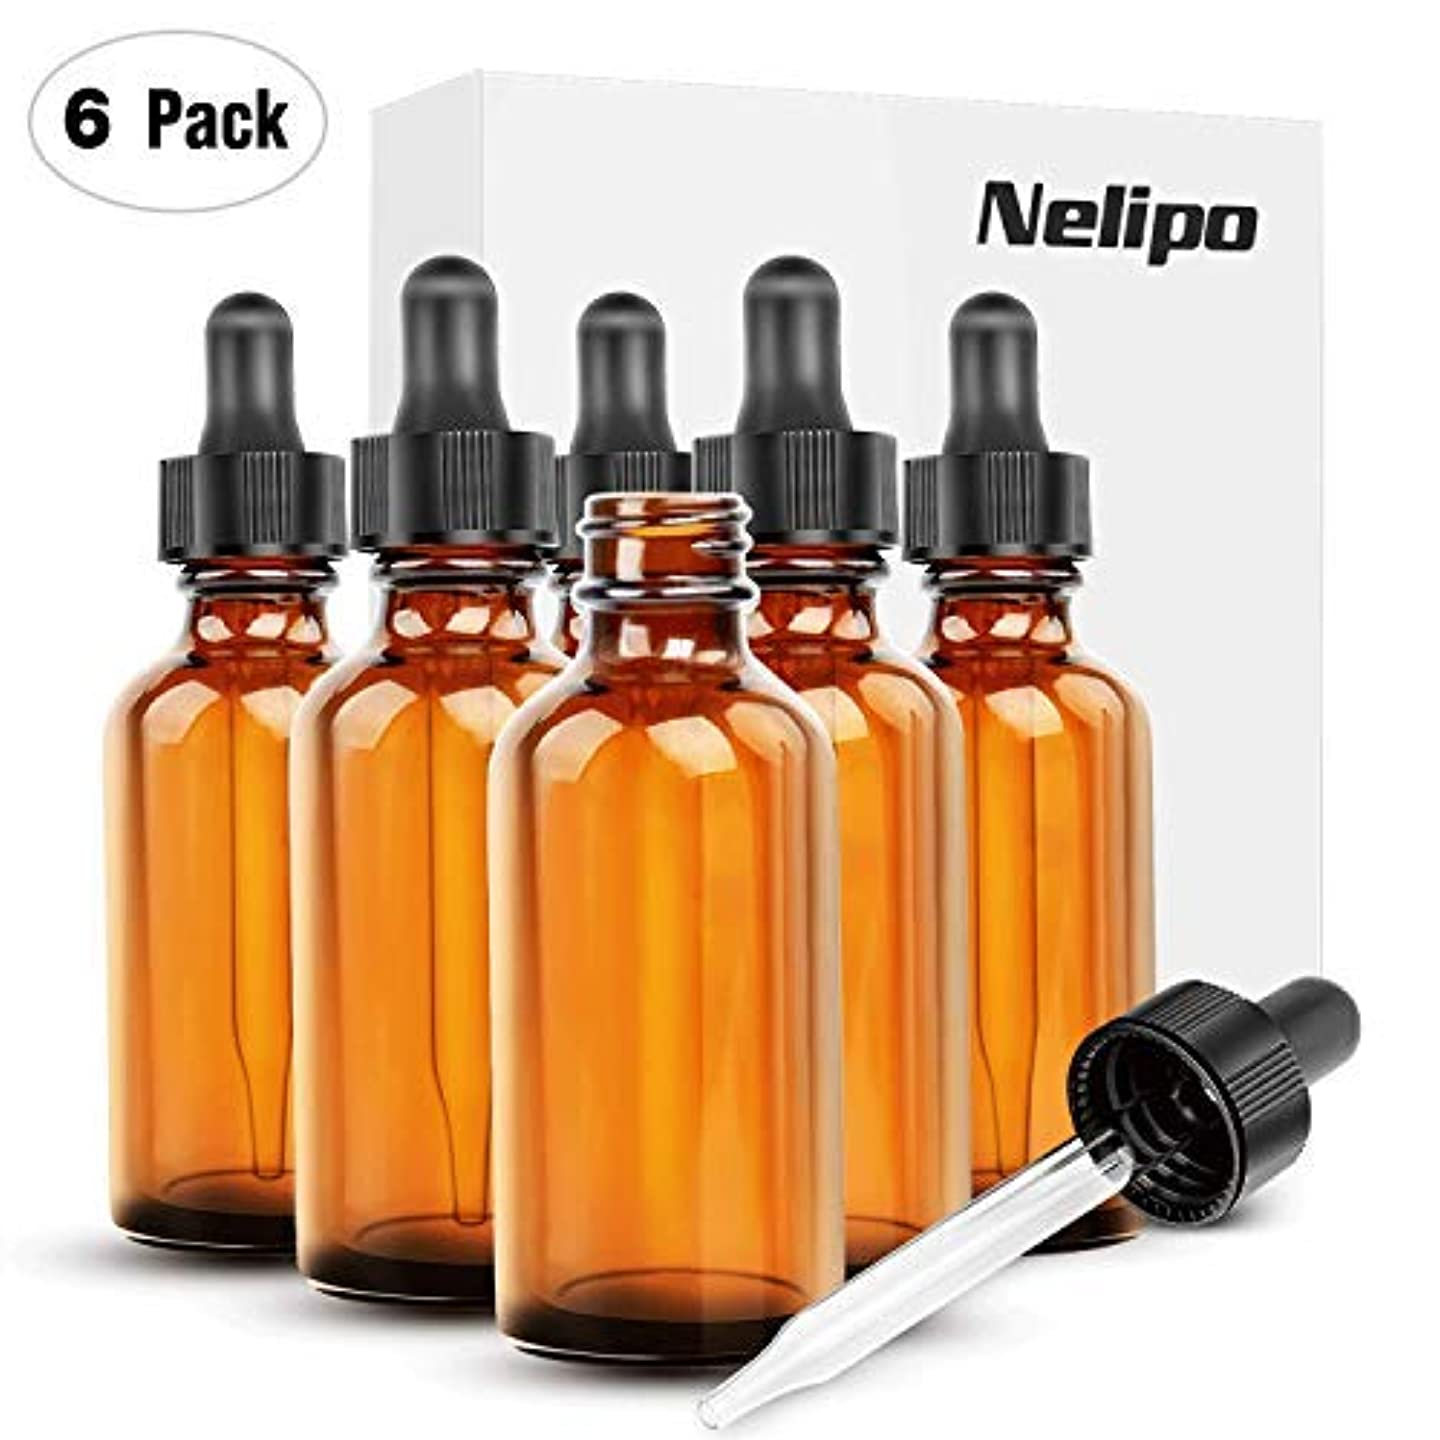 資本主義クランプ事実上Nelipo 2oz Amber Glass Bottles for Essential Oils with Glass Eye Dropper - Pack of 6 [並行輸入品]